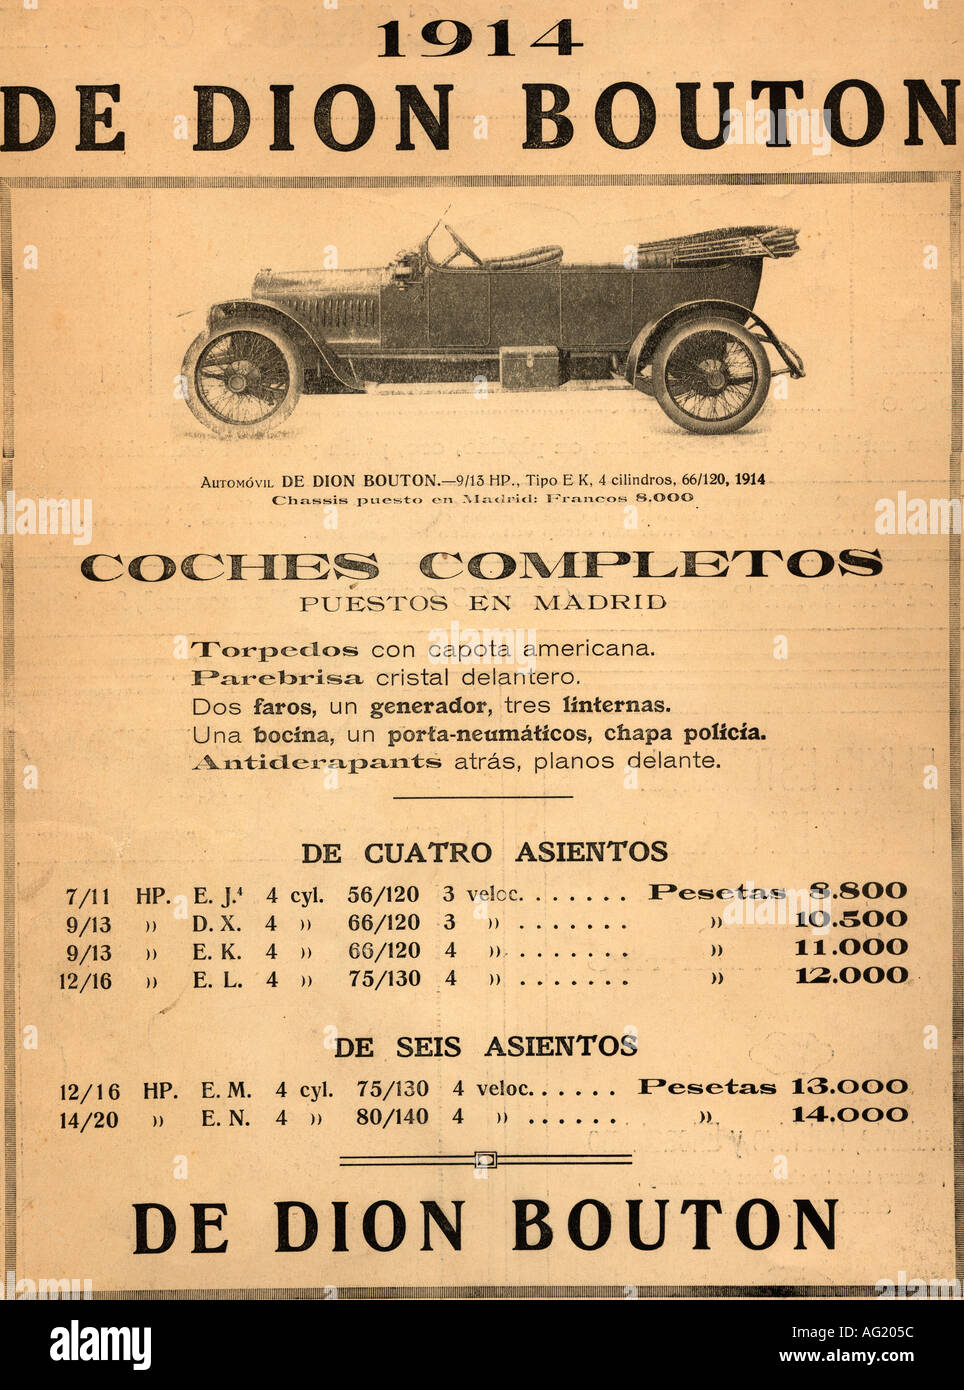 Spanish advertisement for a 1914 De Dion Bouton car. - Stock Image